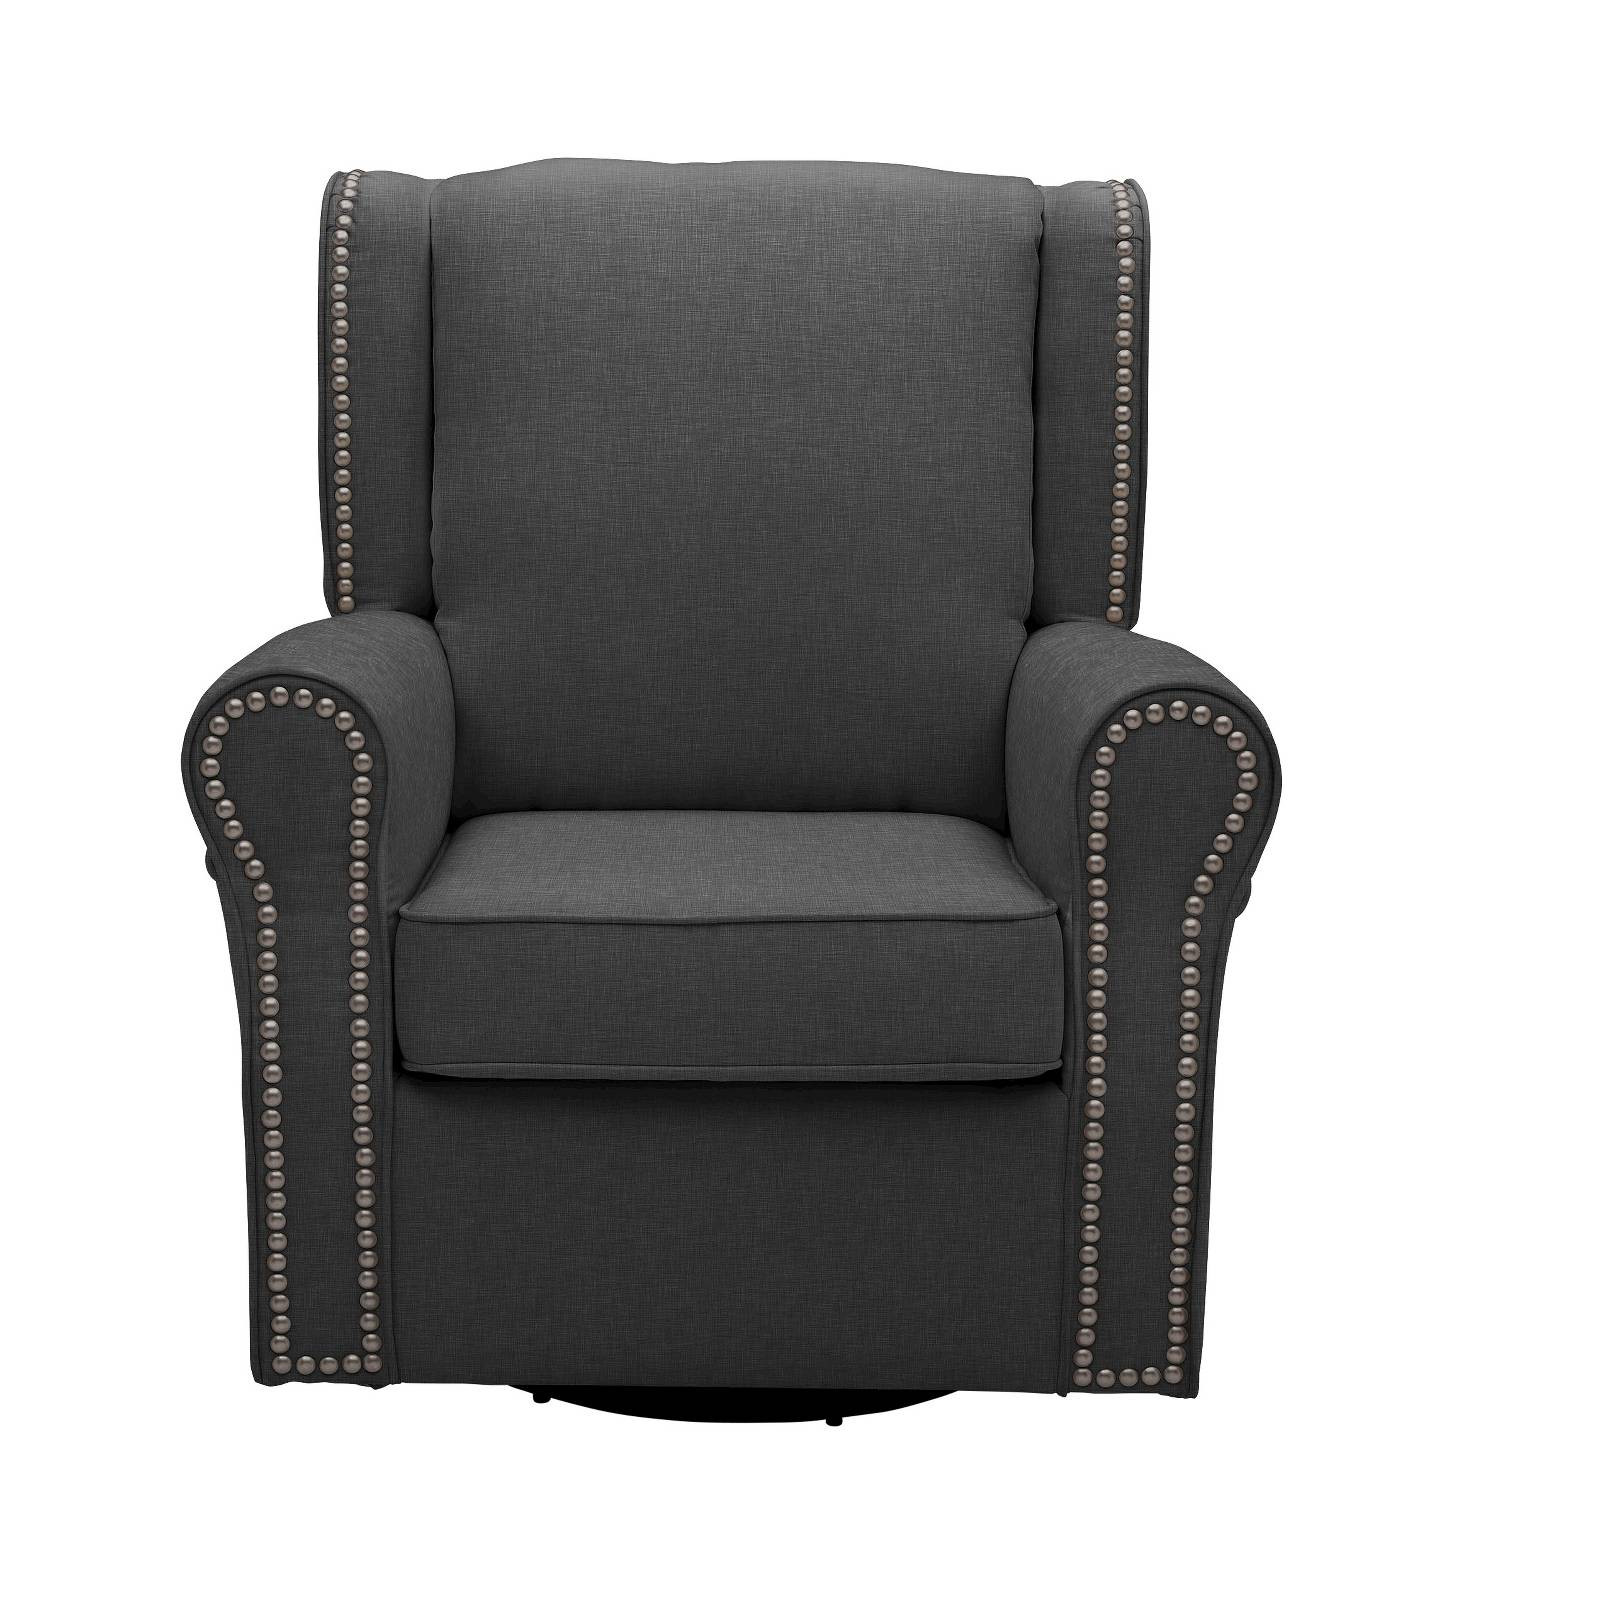 Best ideas about Swivel Glider Chair . Save or Pin Delta Children Middleton Nursery Glider Swivel Rocker Now.